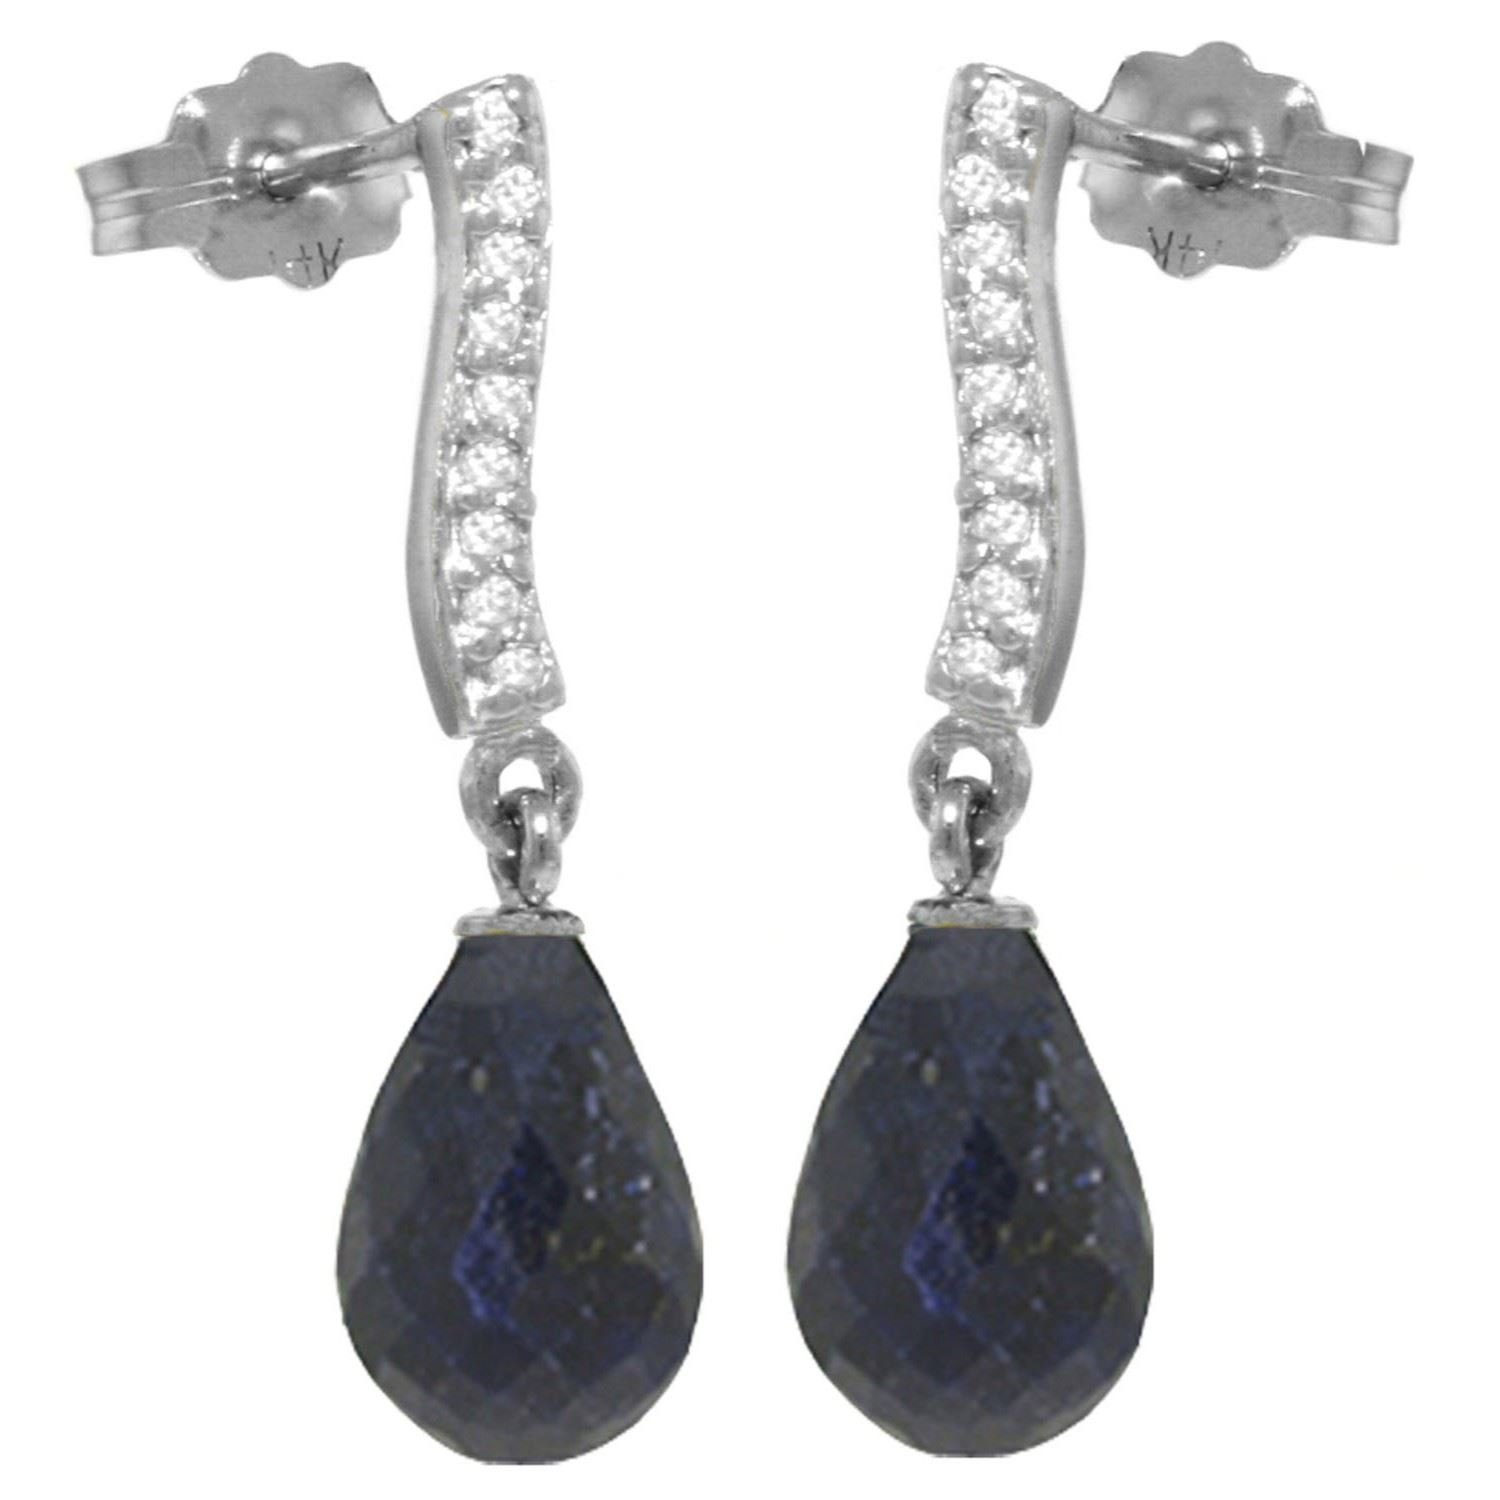 ALARRI 6.88 Carat 14K Solid White Gold Love That Dances Sapphire Diamond Earrings